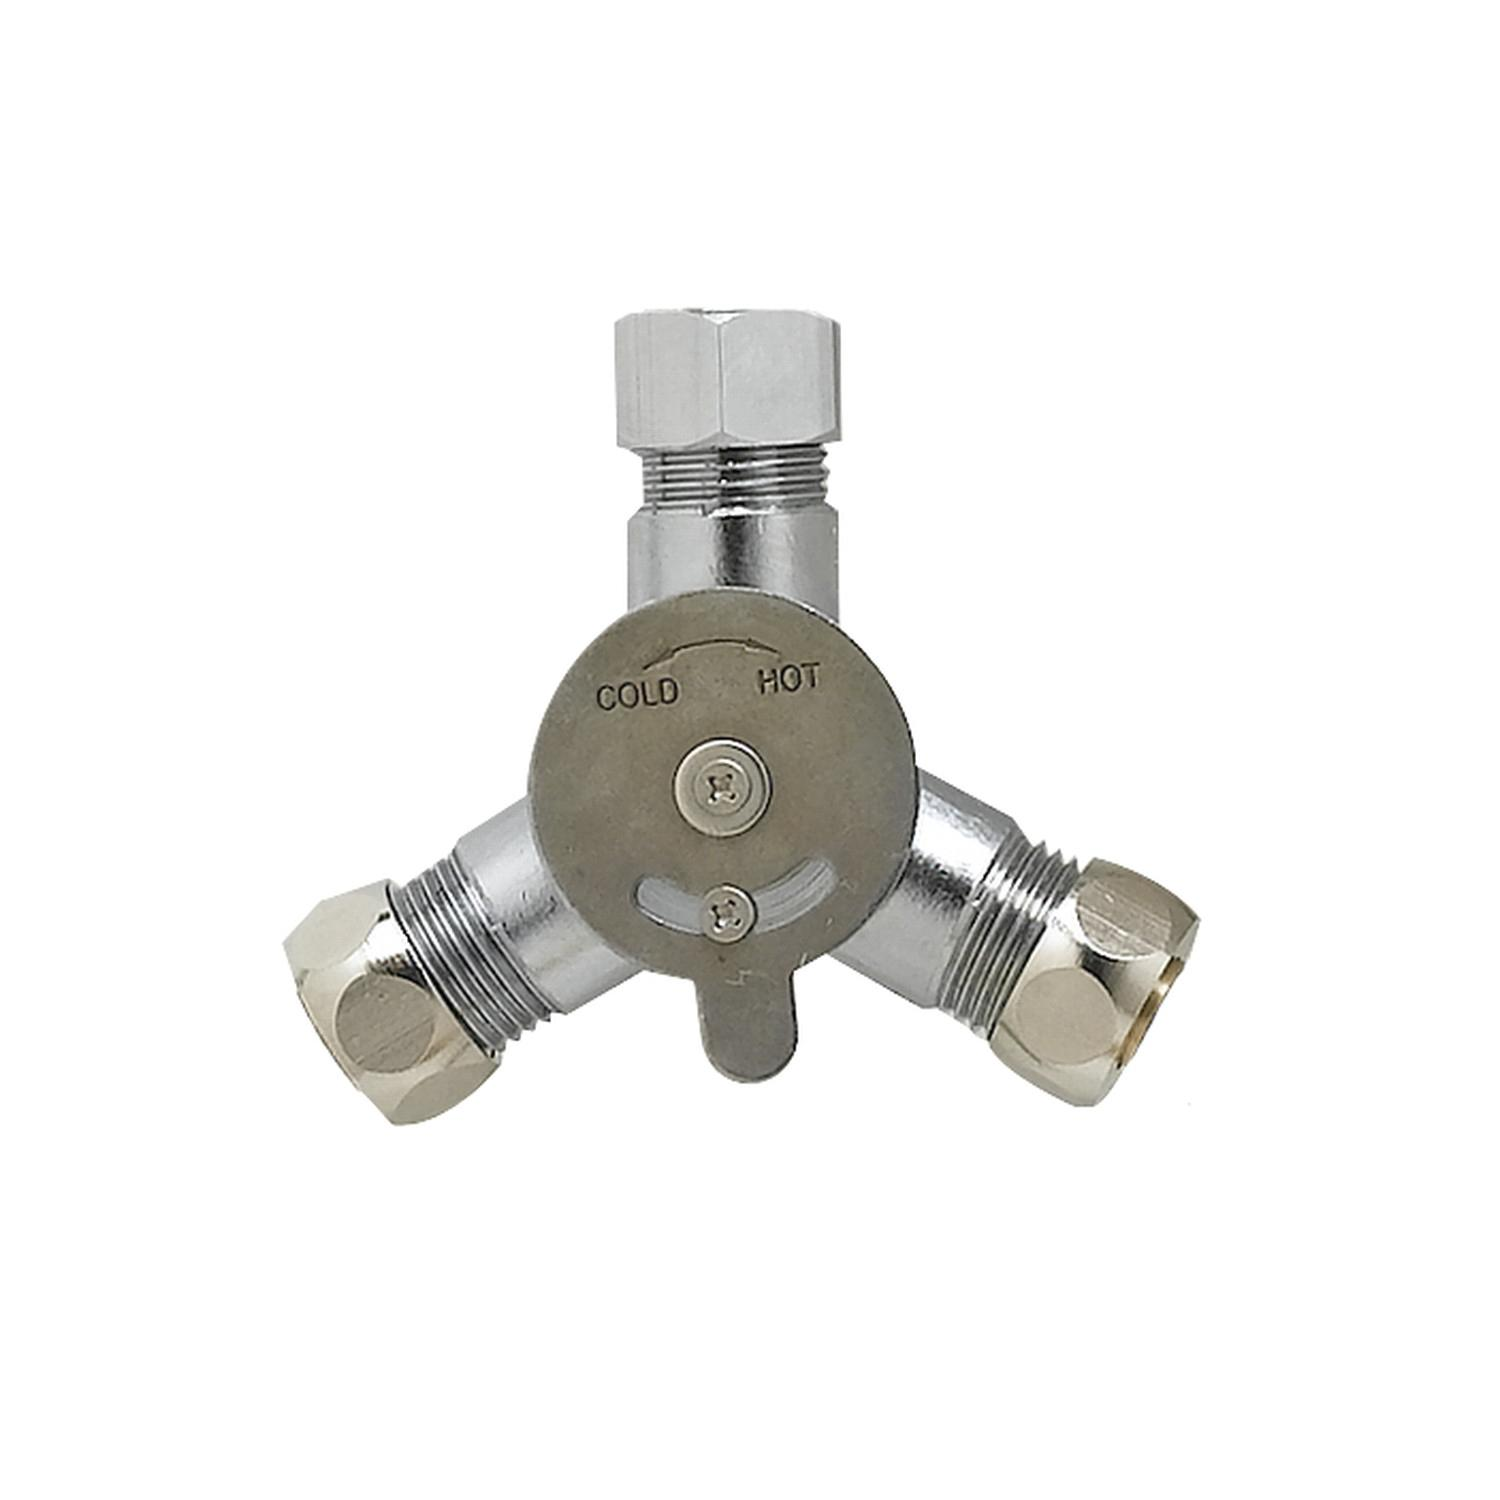 T&S BRASS MECHANICAL MIXING VALVE